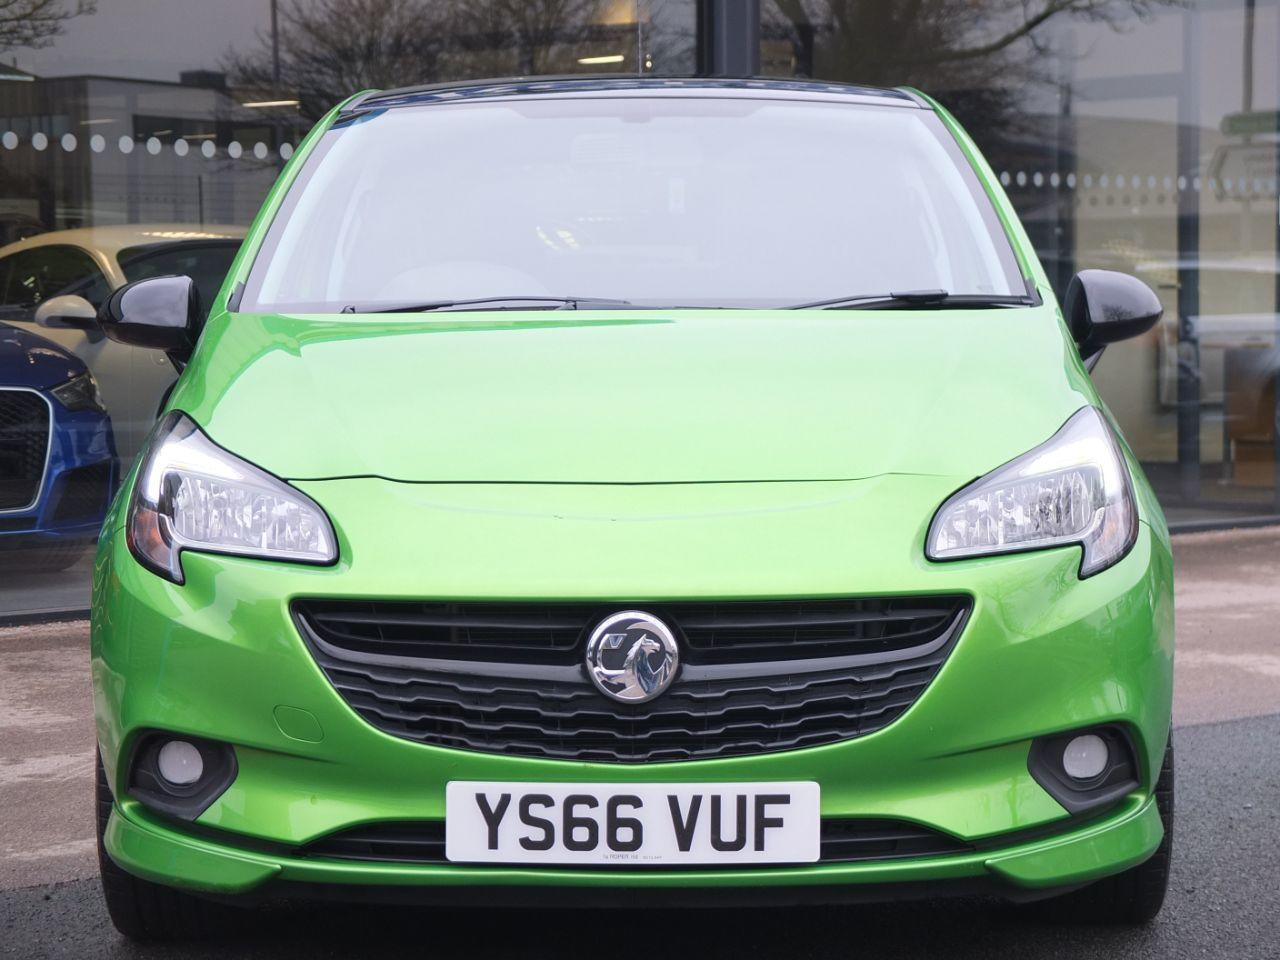 Vauxhall Corsa 1.4 [75] ecoFLEX Limited Edition 3 door Hatchback Petrol Lime Green Pearlescent